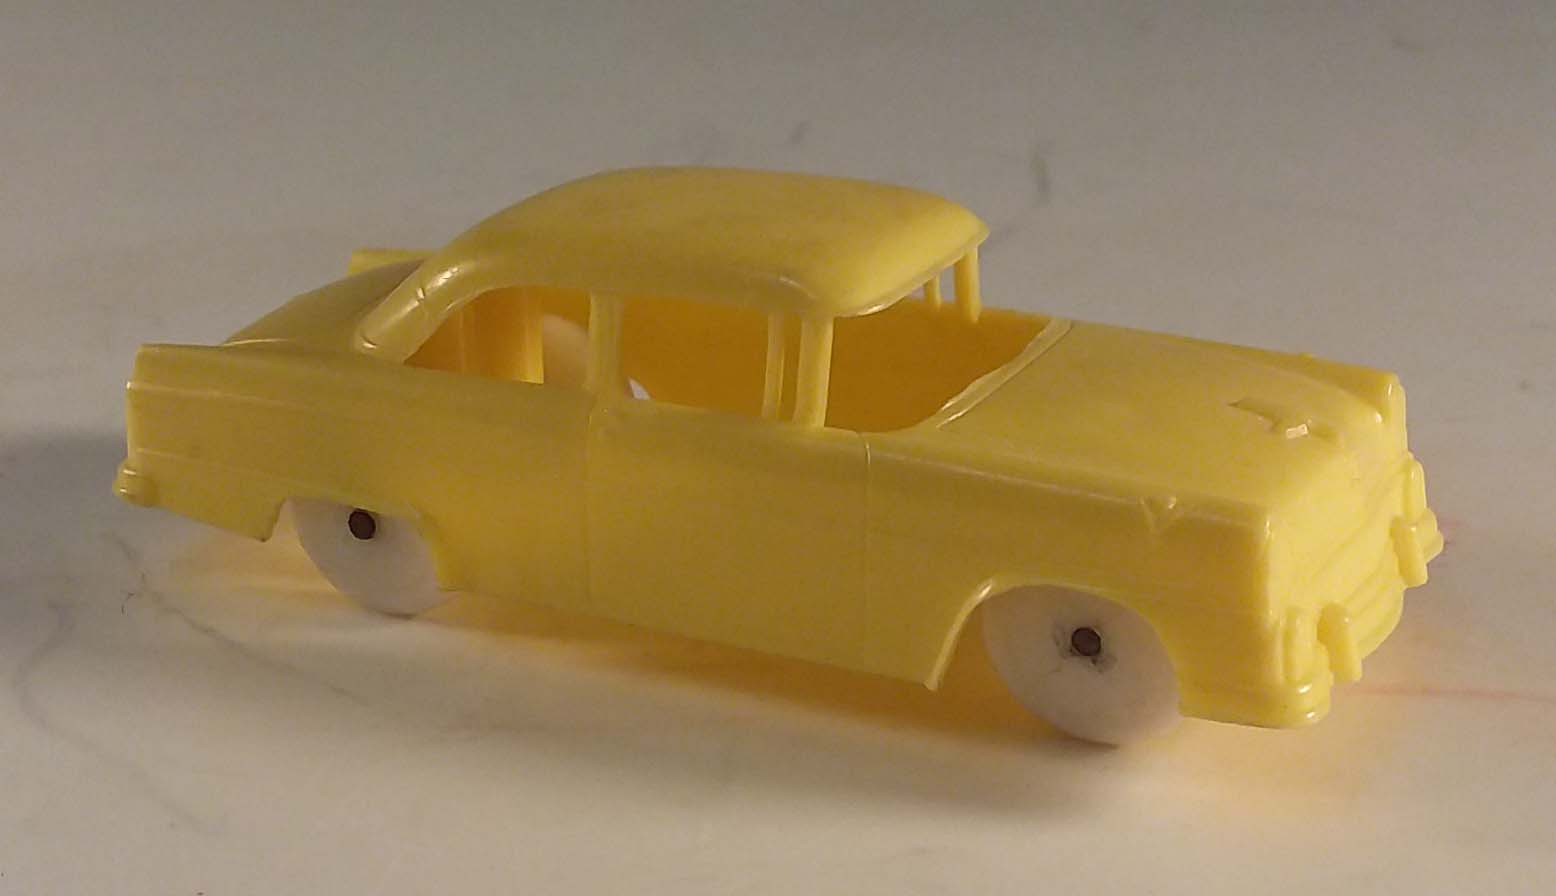 1955 Ford Tudor in yellow Wheaties cereal giveaway